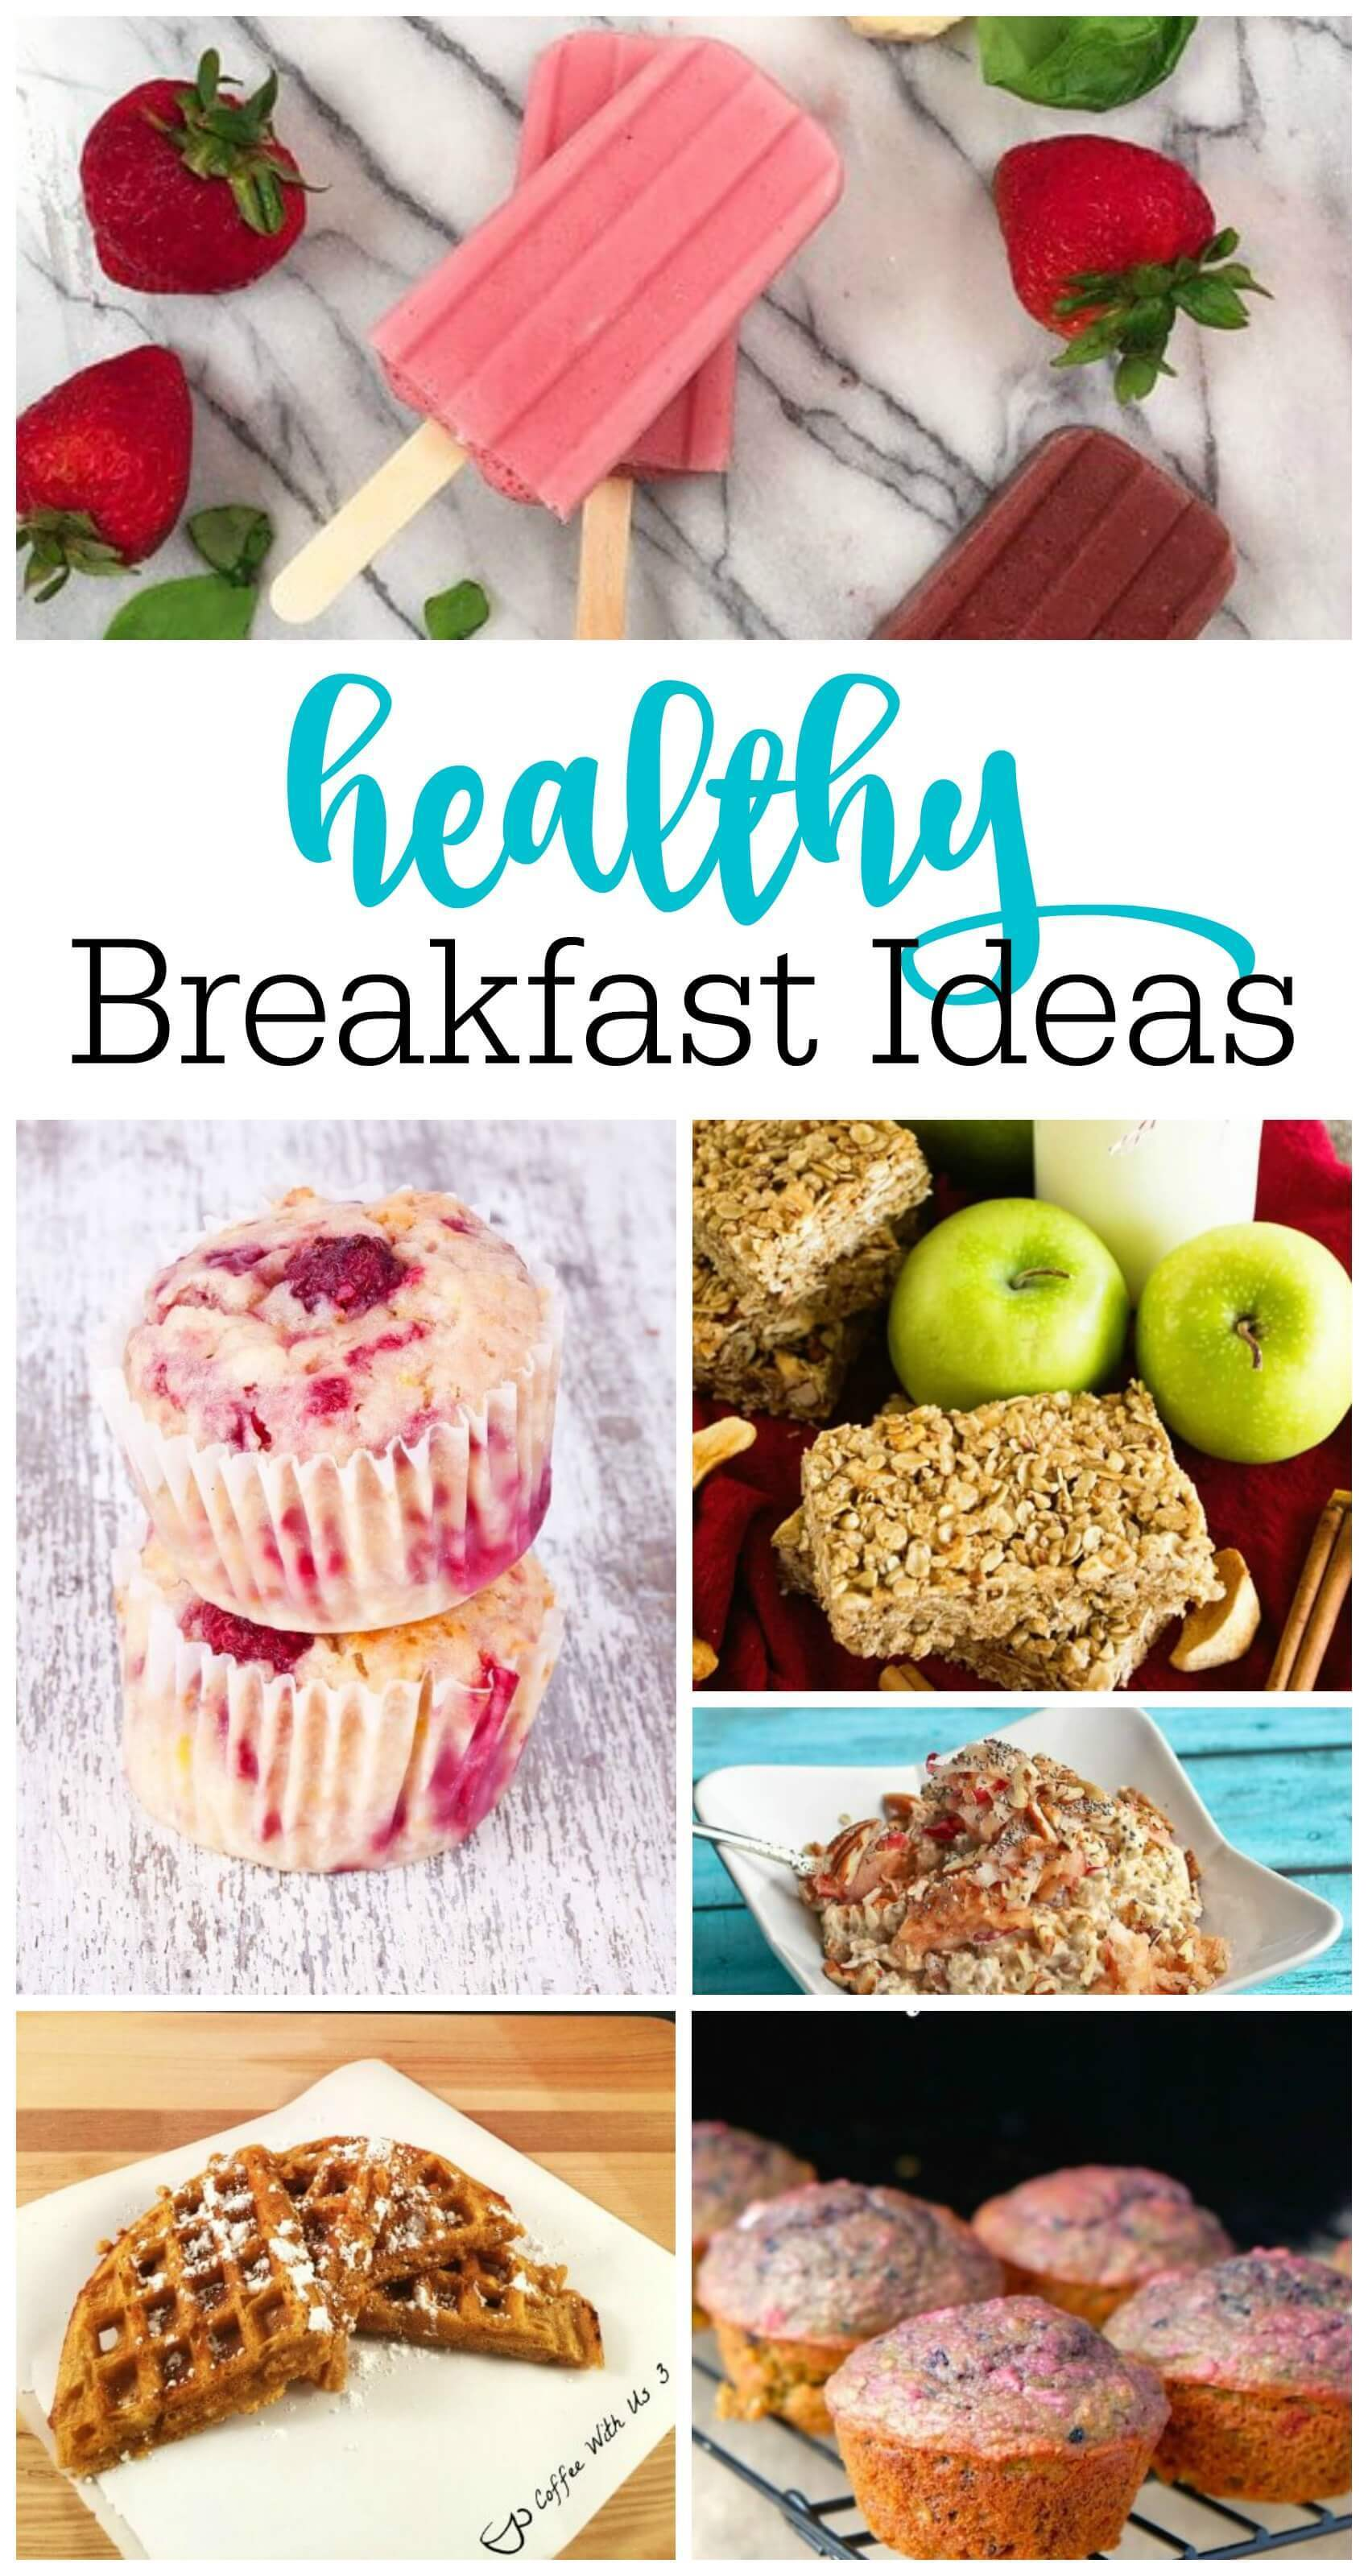 Healthy Breakfast Ideas for Busy Mornings